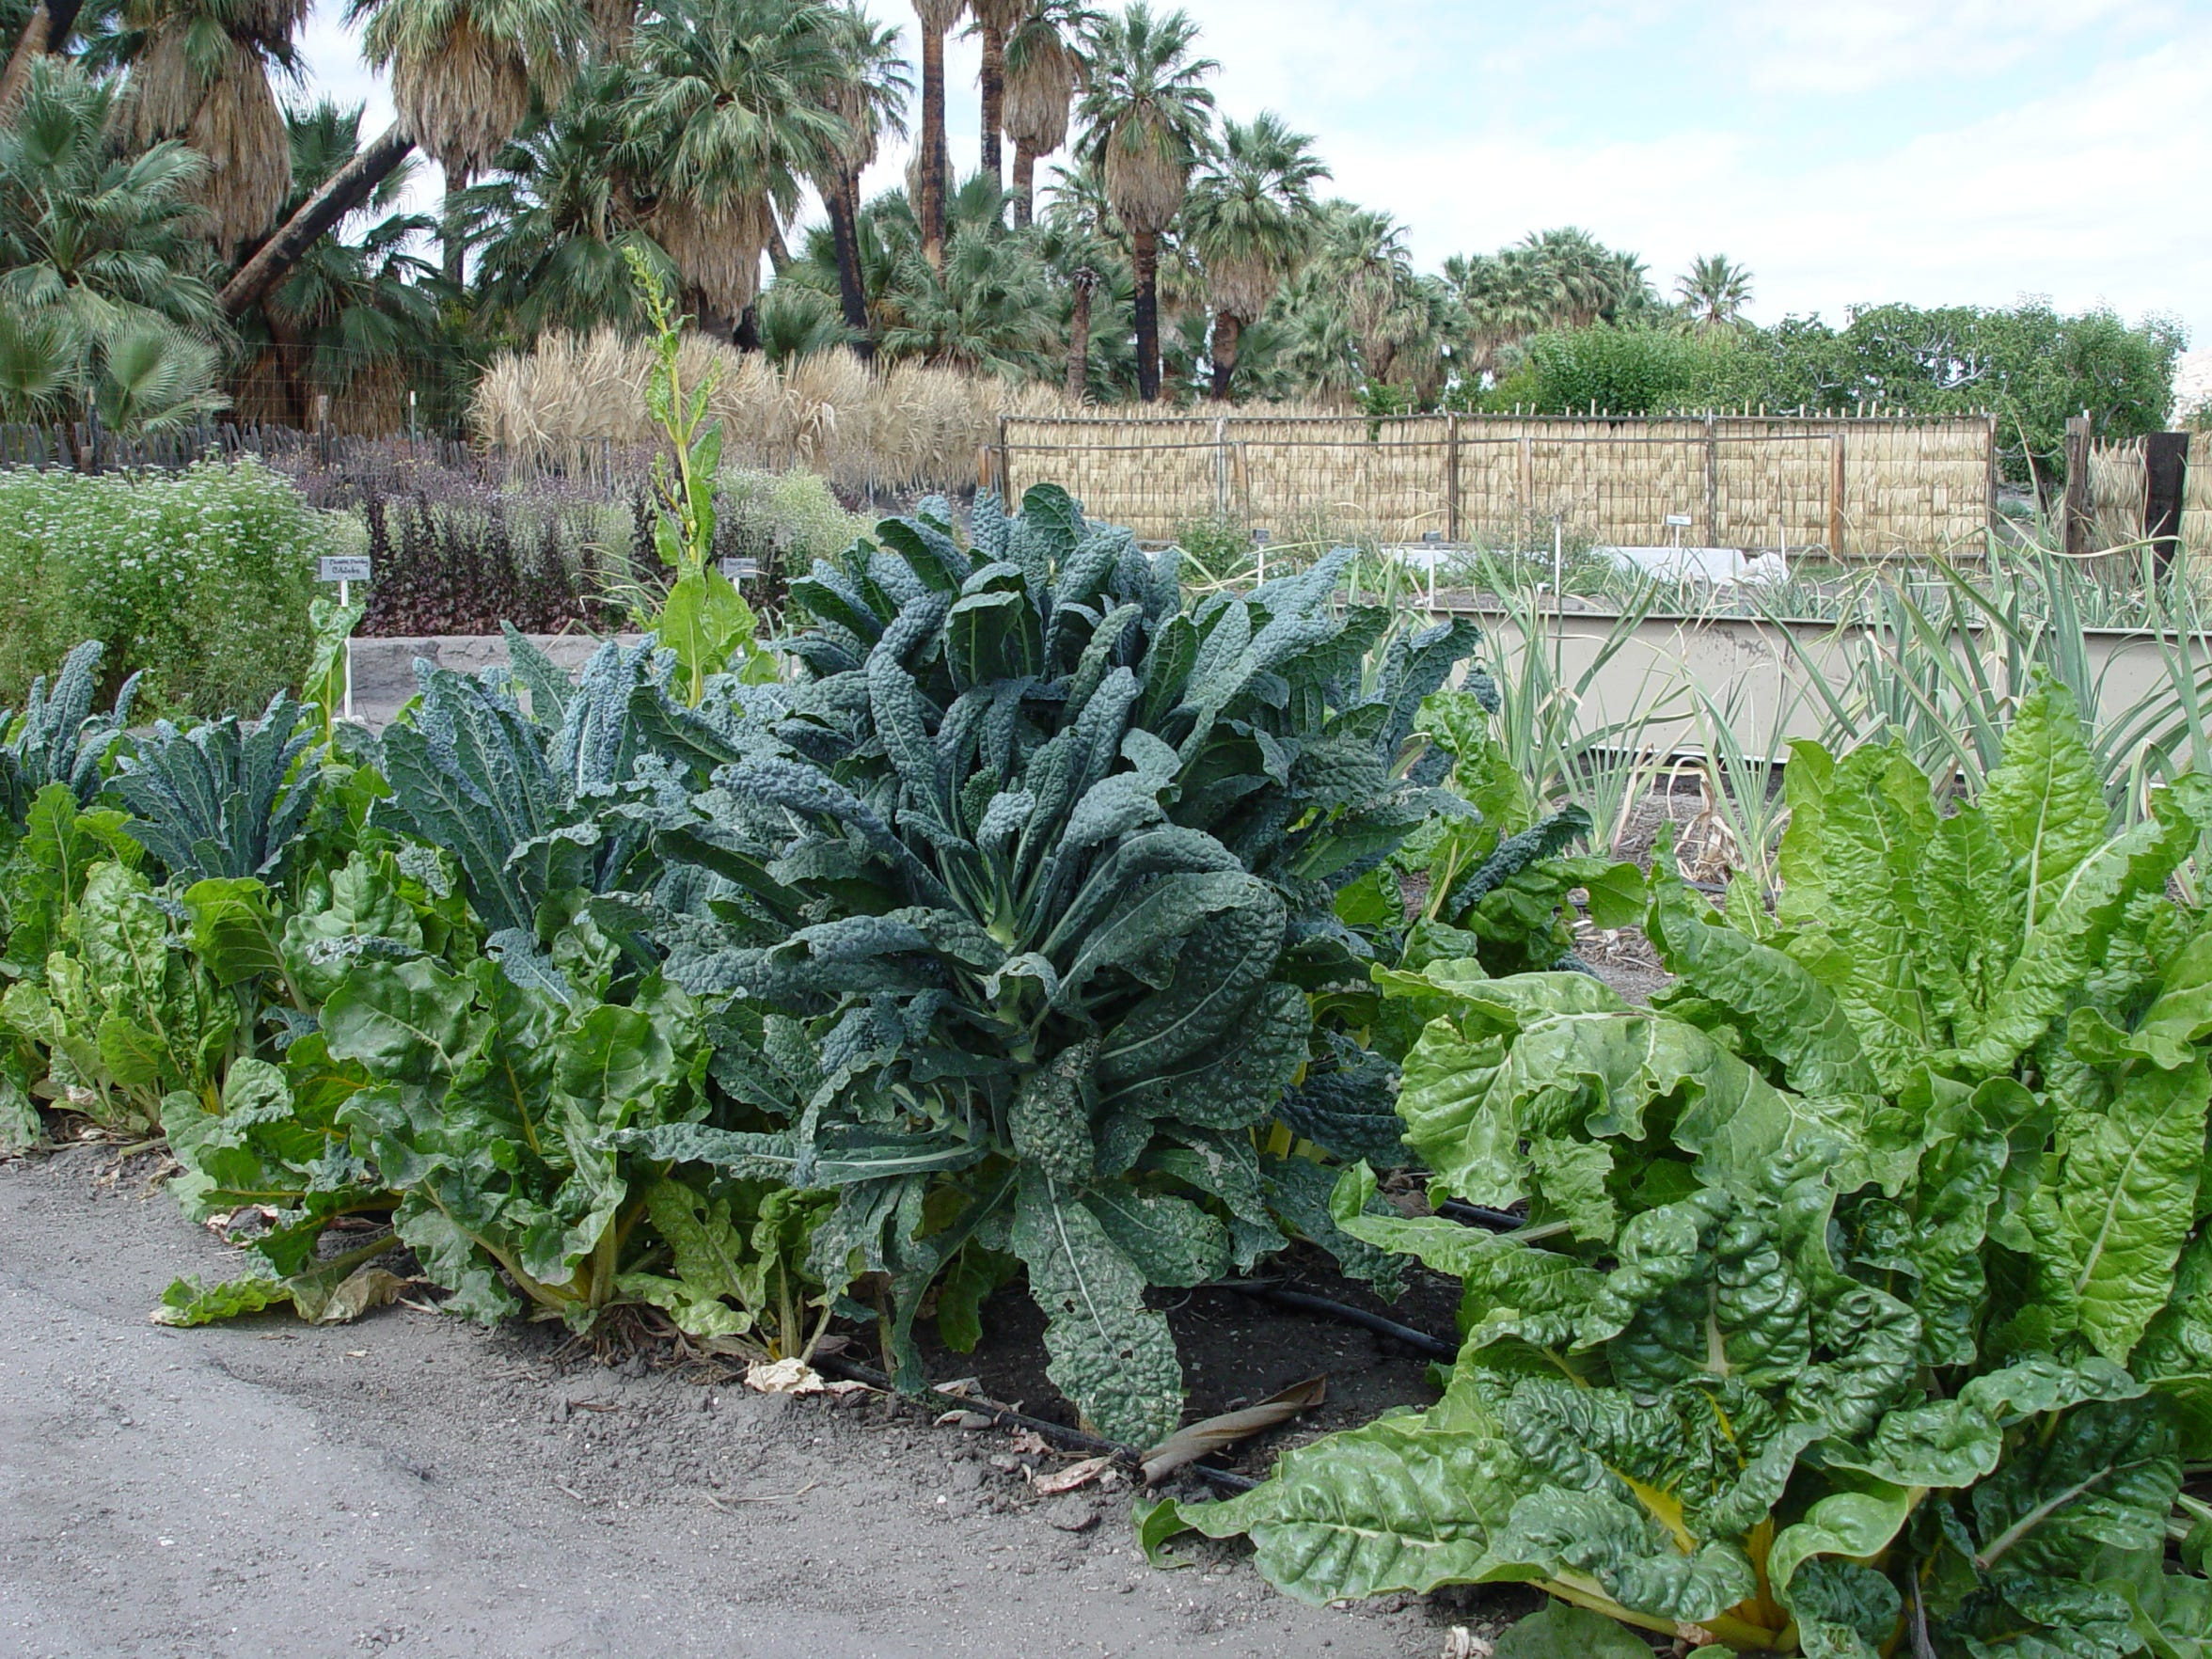 Chard and kale are the most long lived crops for winter gardens which remain sweeter in the cold.